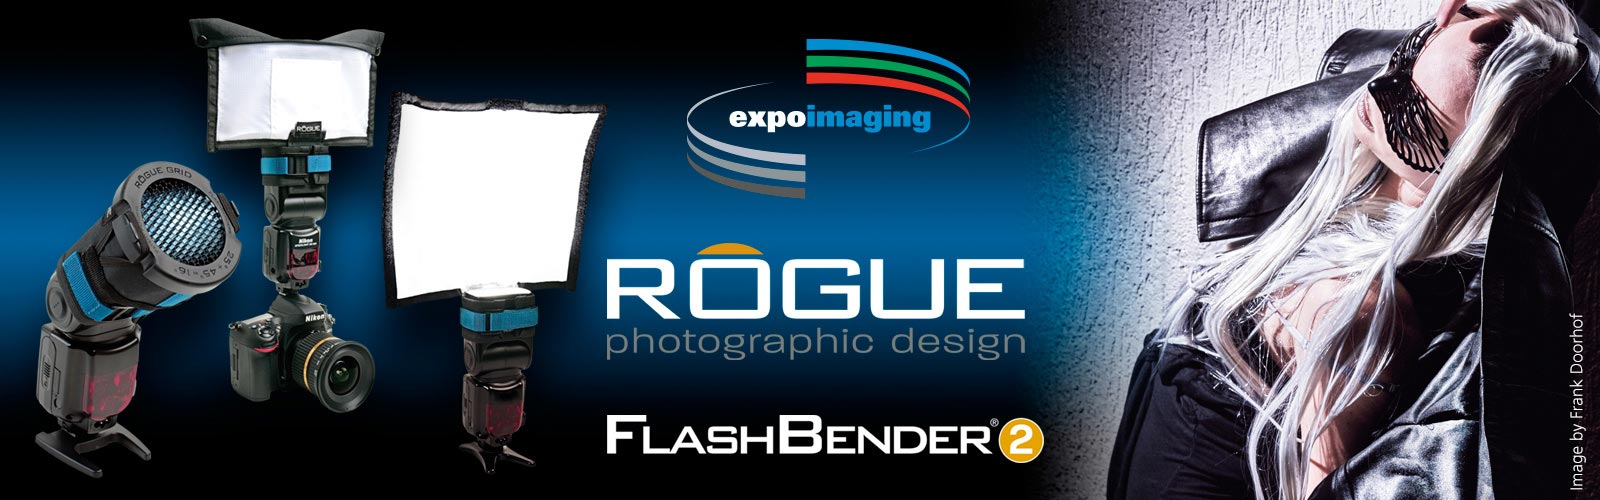 product_expoimaging_compressed1